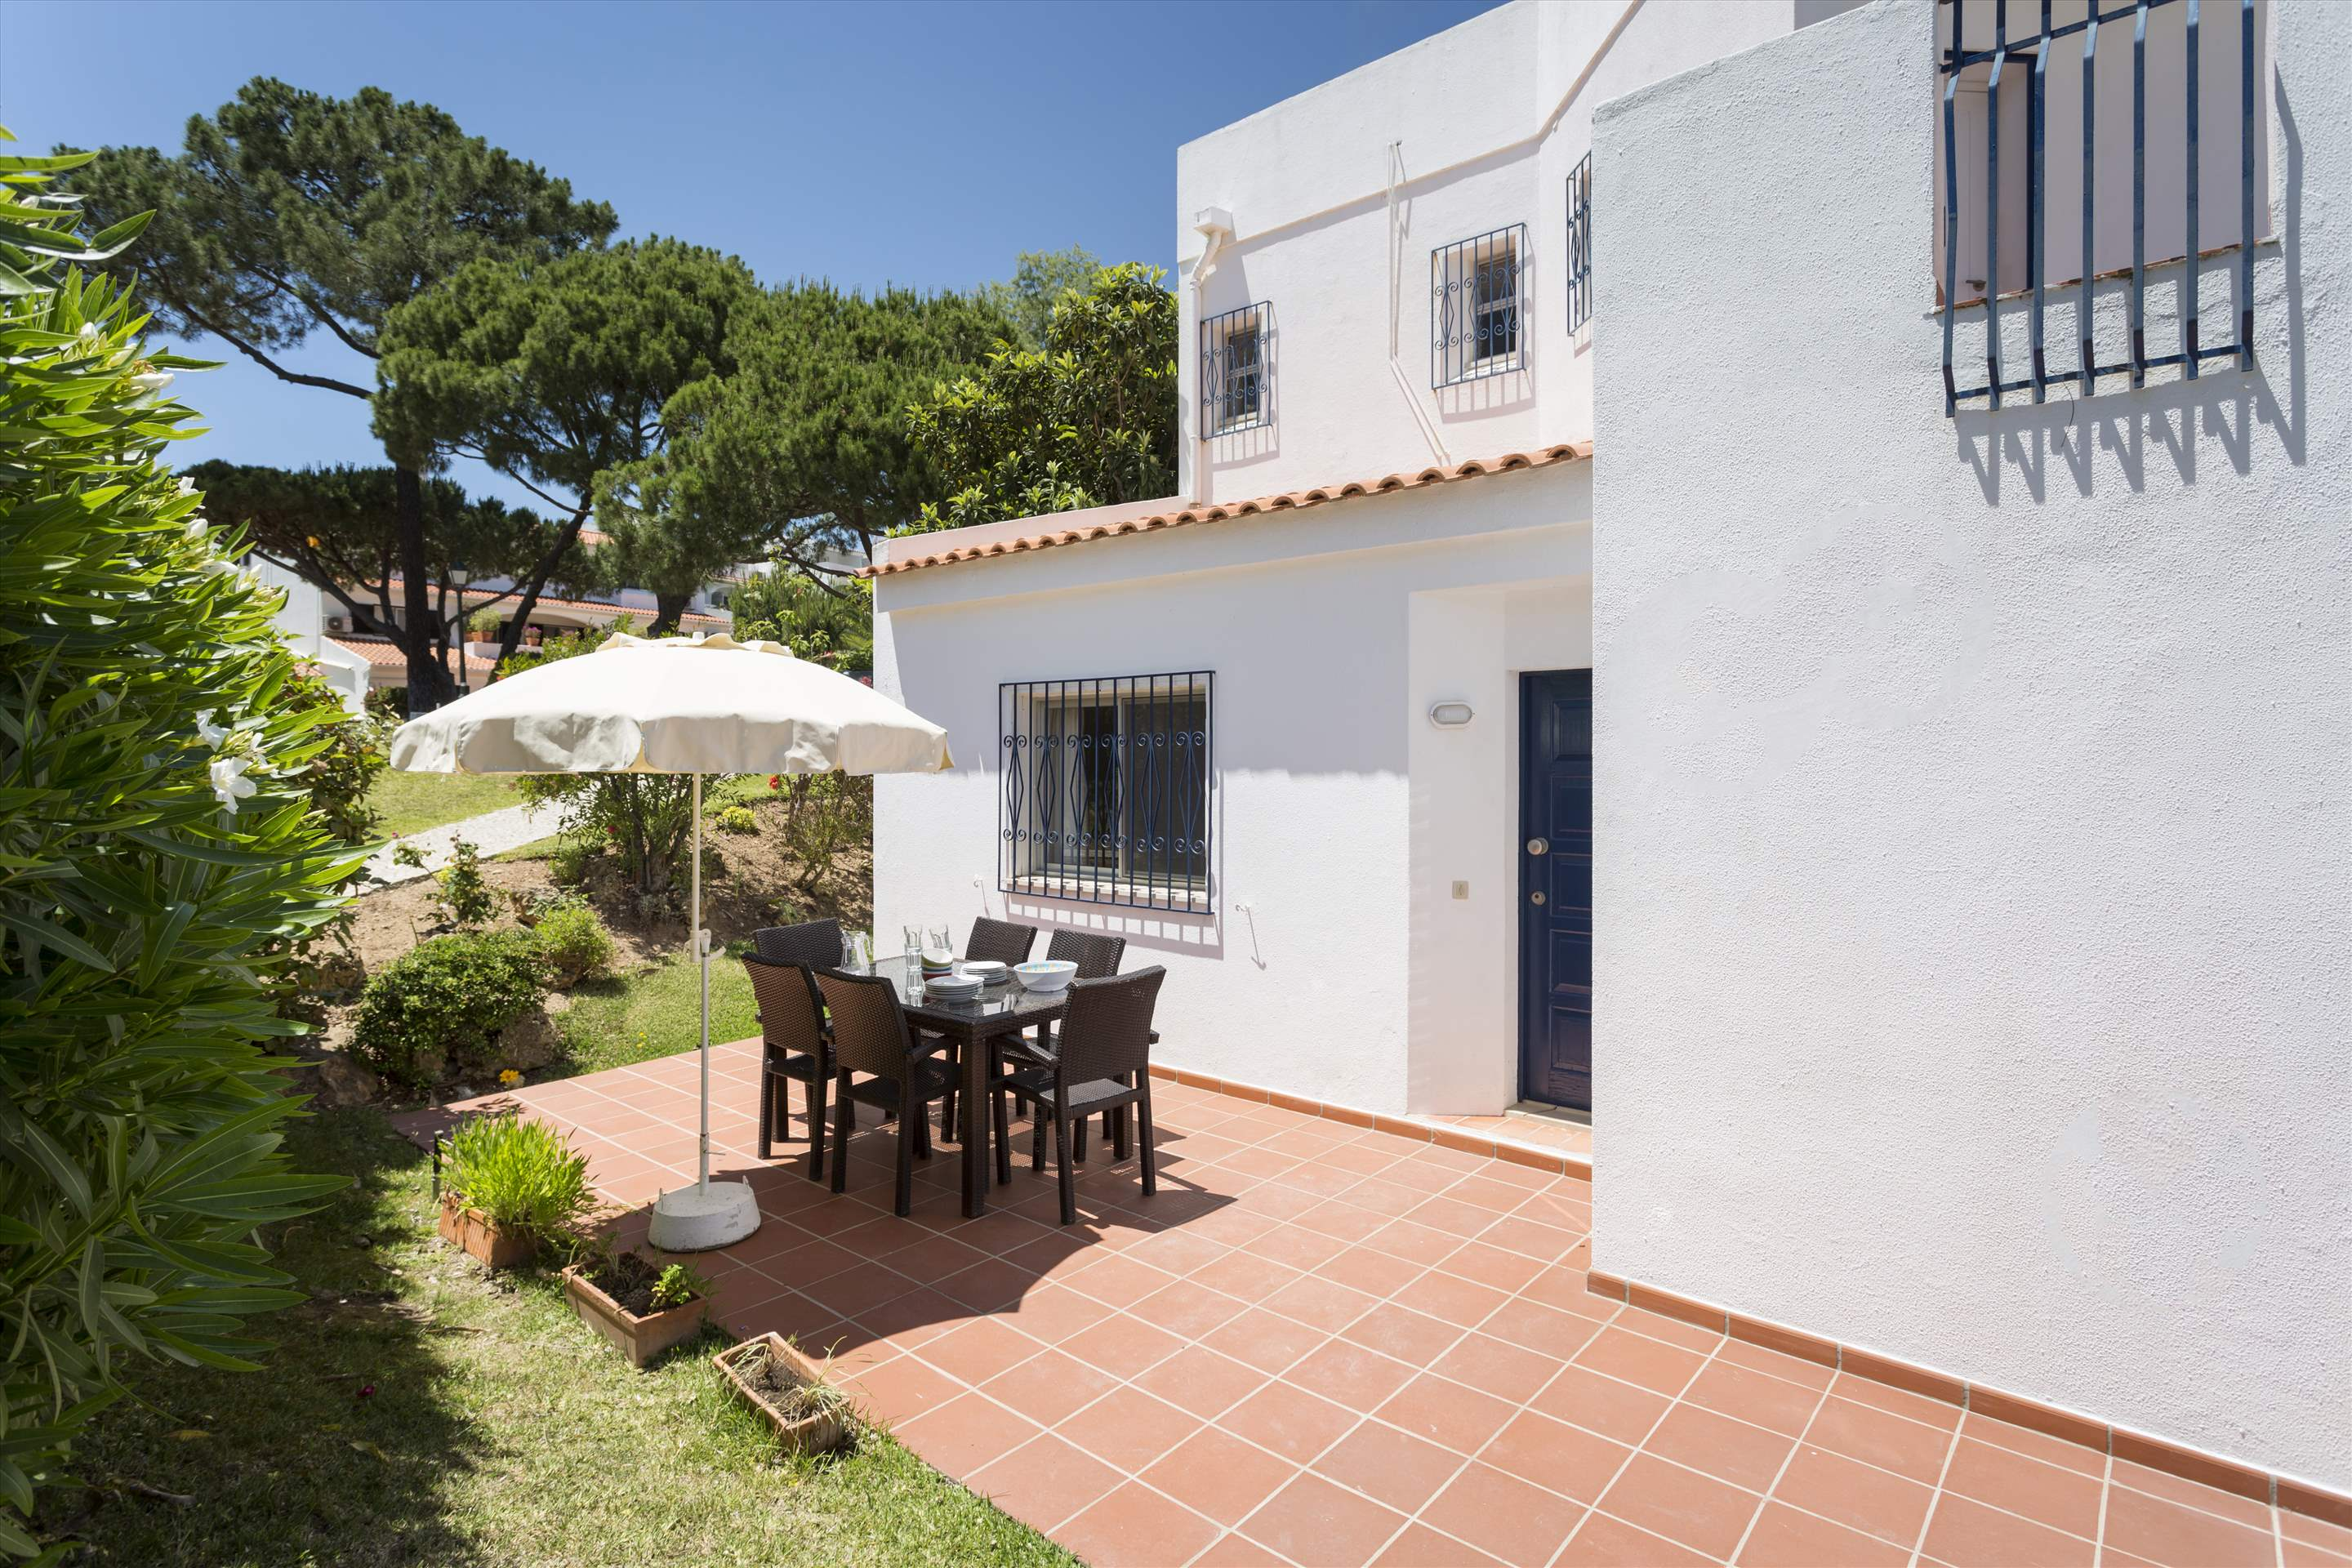 Villa Flamingo, 3 bedroom villa in Vale do Lobo, Algarve